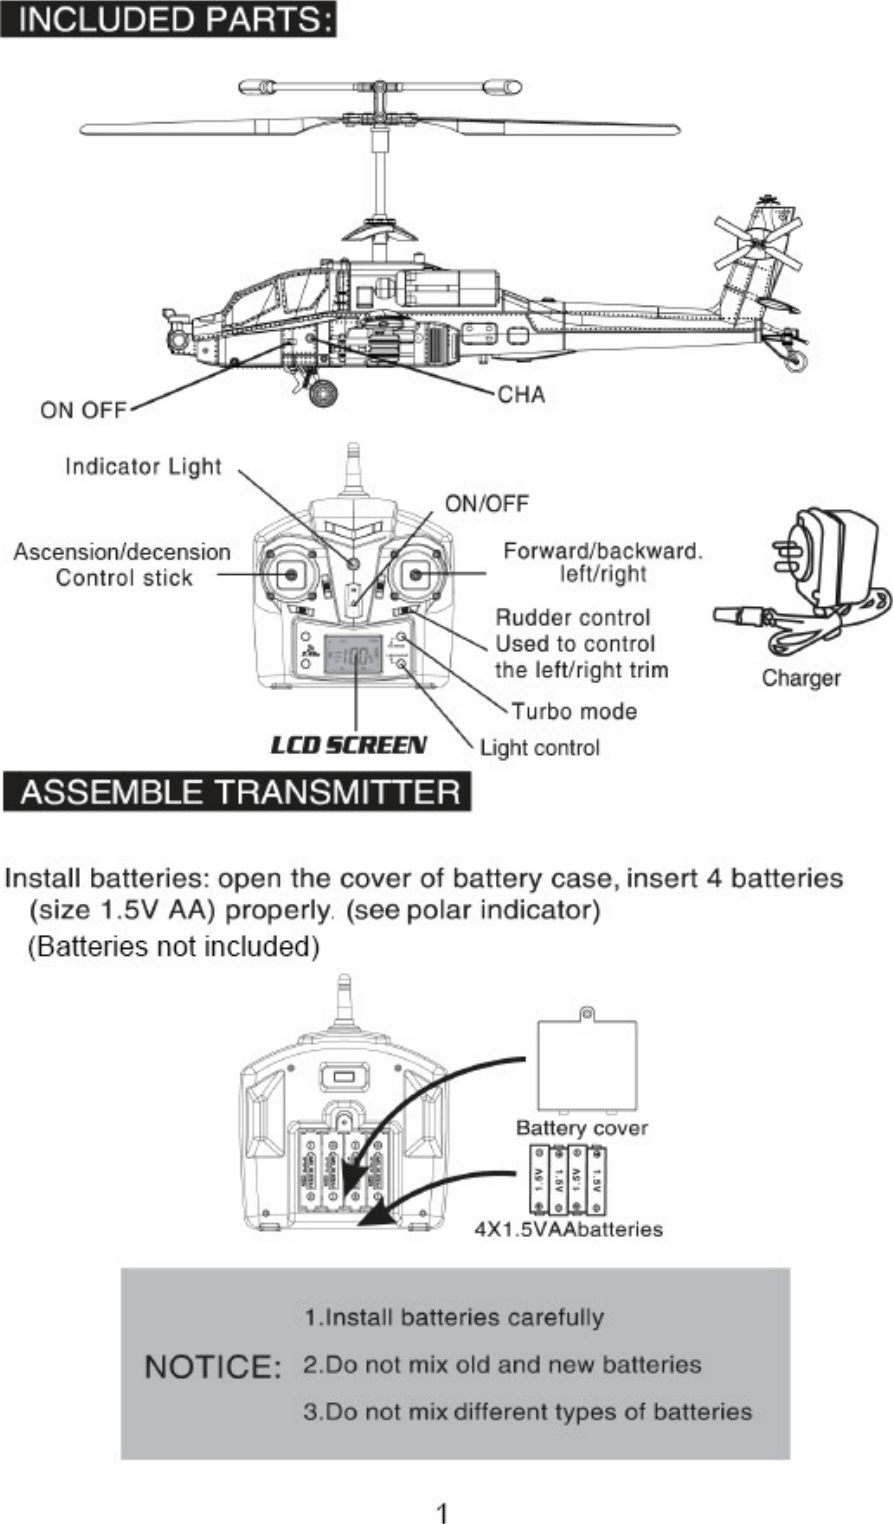 hight resolution of kahelapacha kogan remote control apache gunship helicopter user manual a